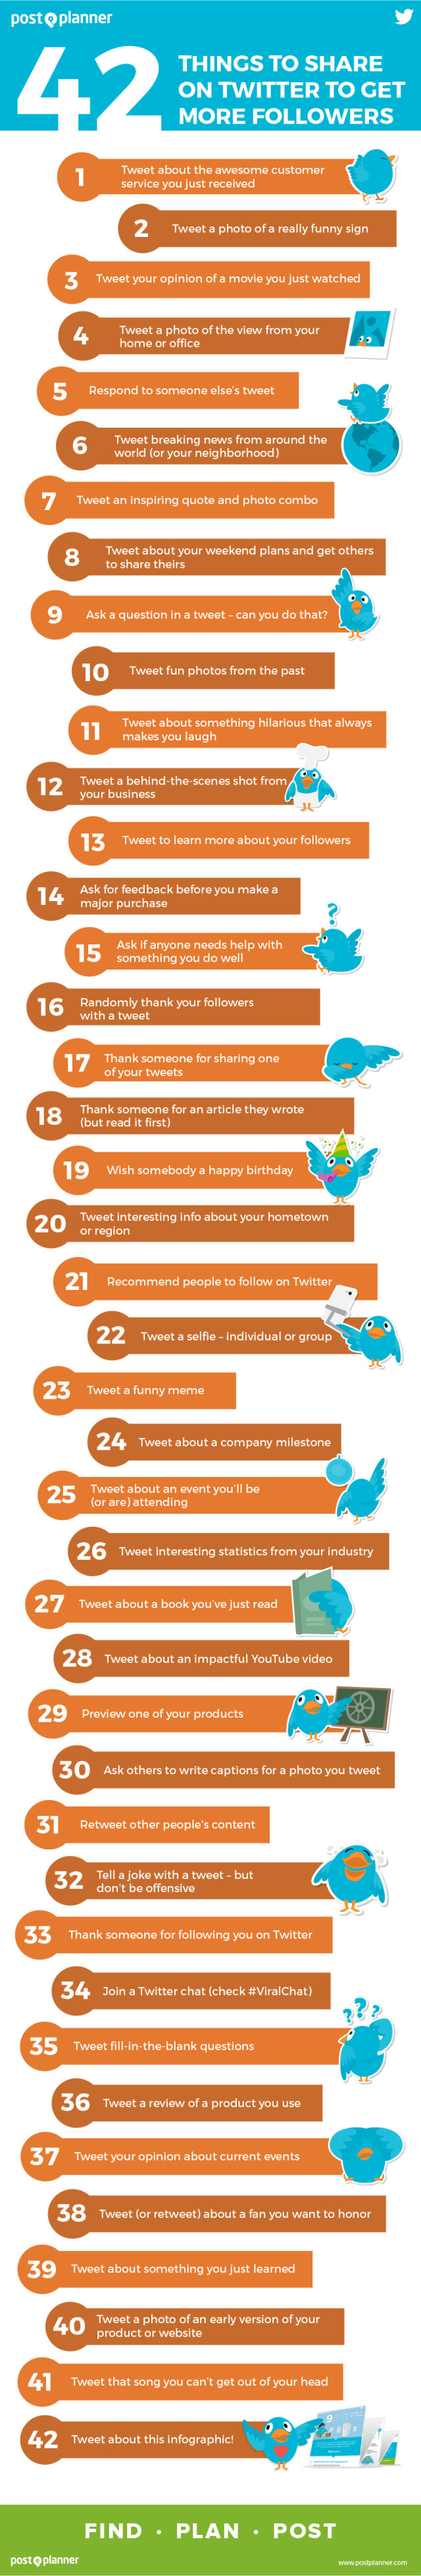 how to get more followers on #Twitter #Infographic #SMM